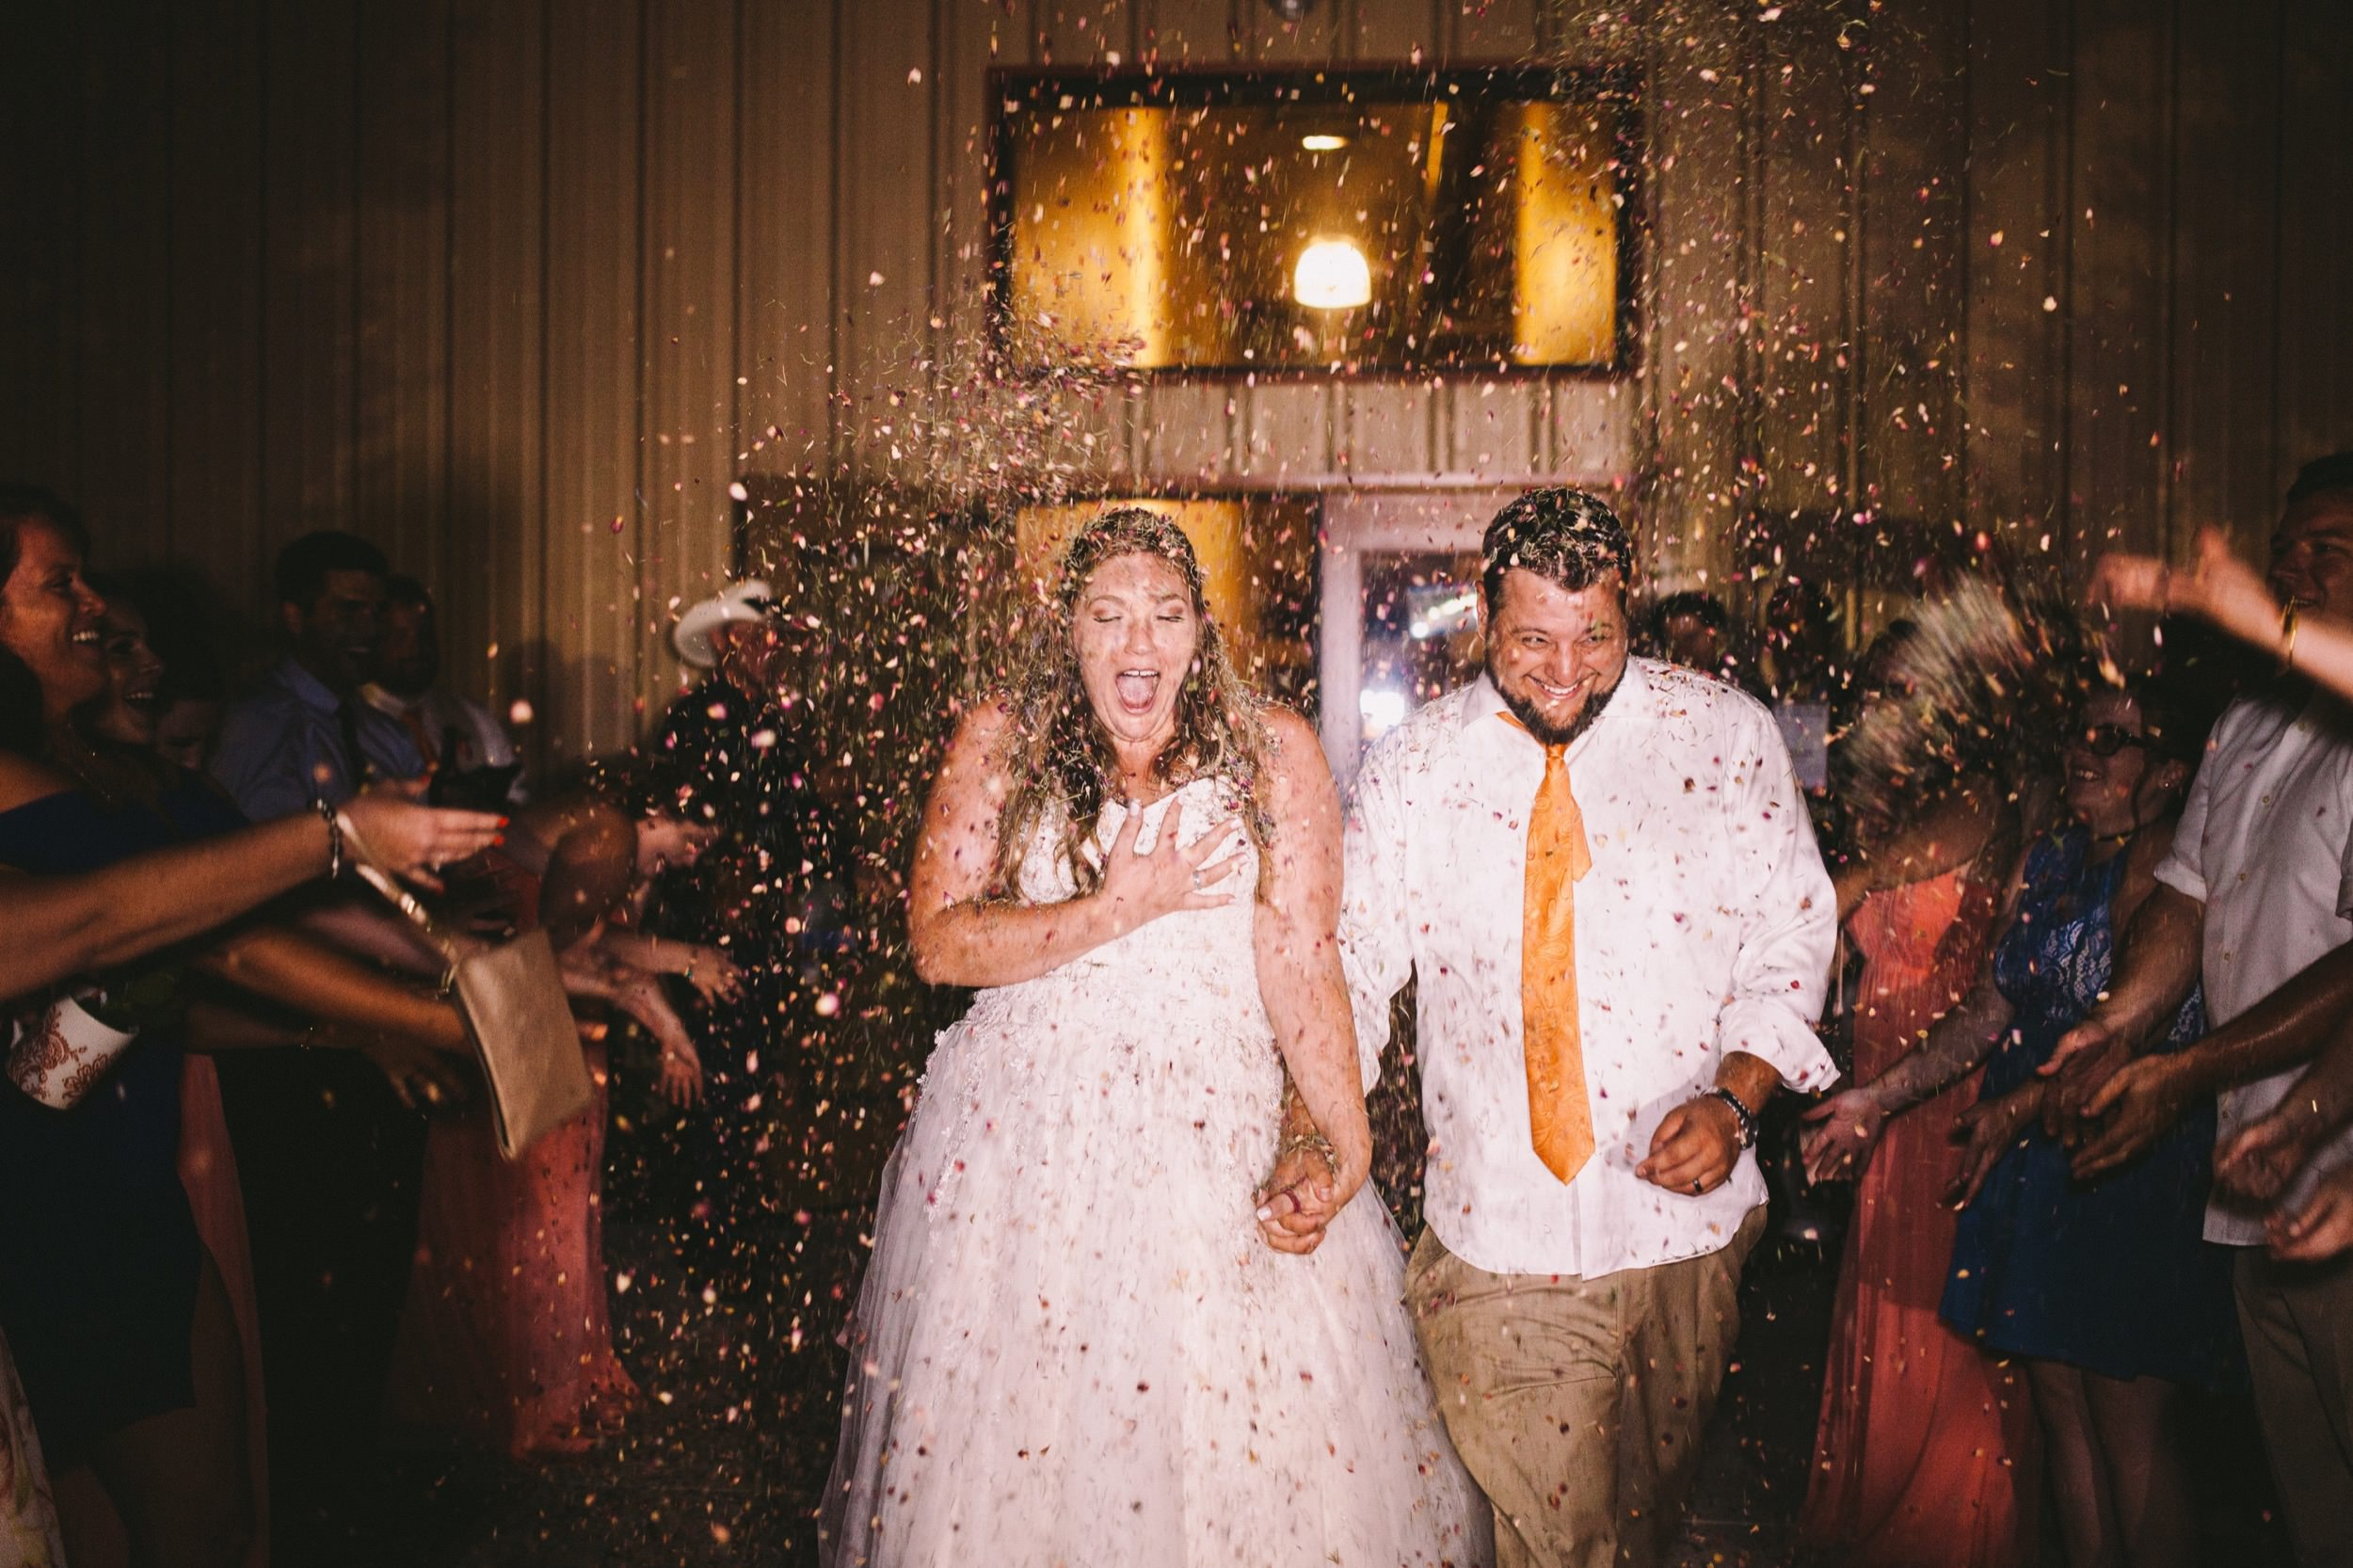 Toca Madera Winery Wedding Exit with Handmade Rose Petal Confetti